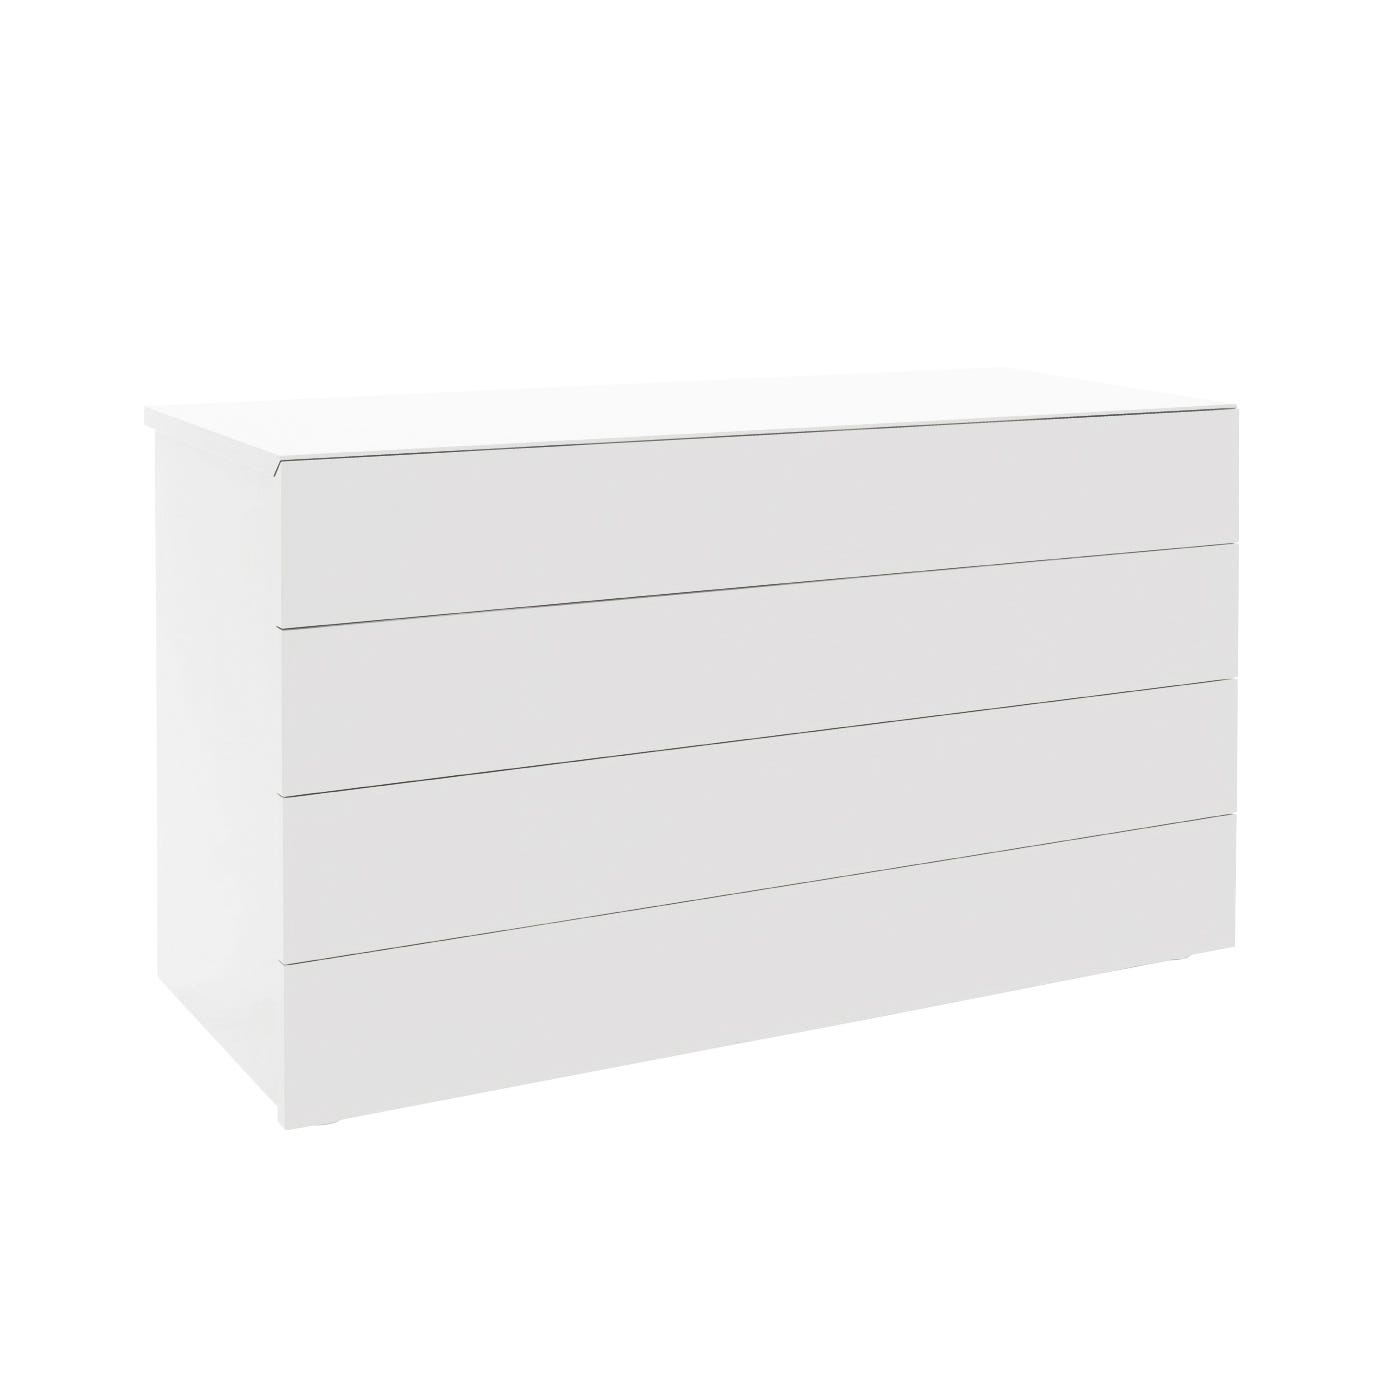 Cap Chest 4 Drawer White High Gloss Lacquer -  Warehouse Sale